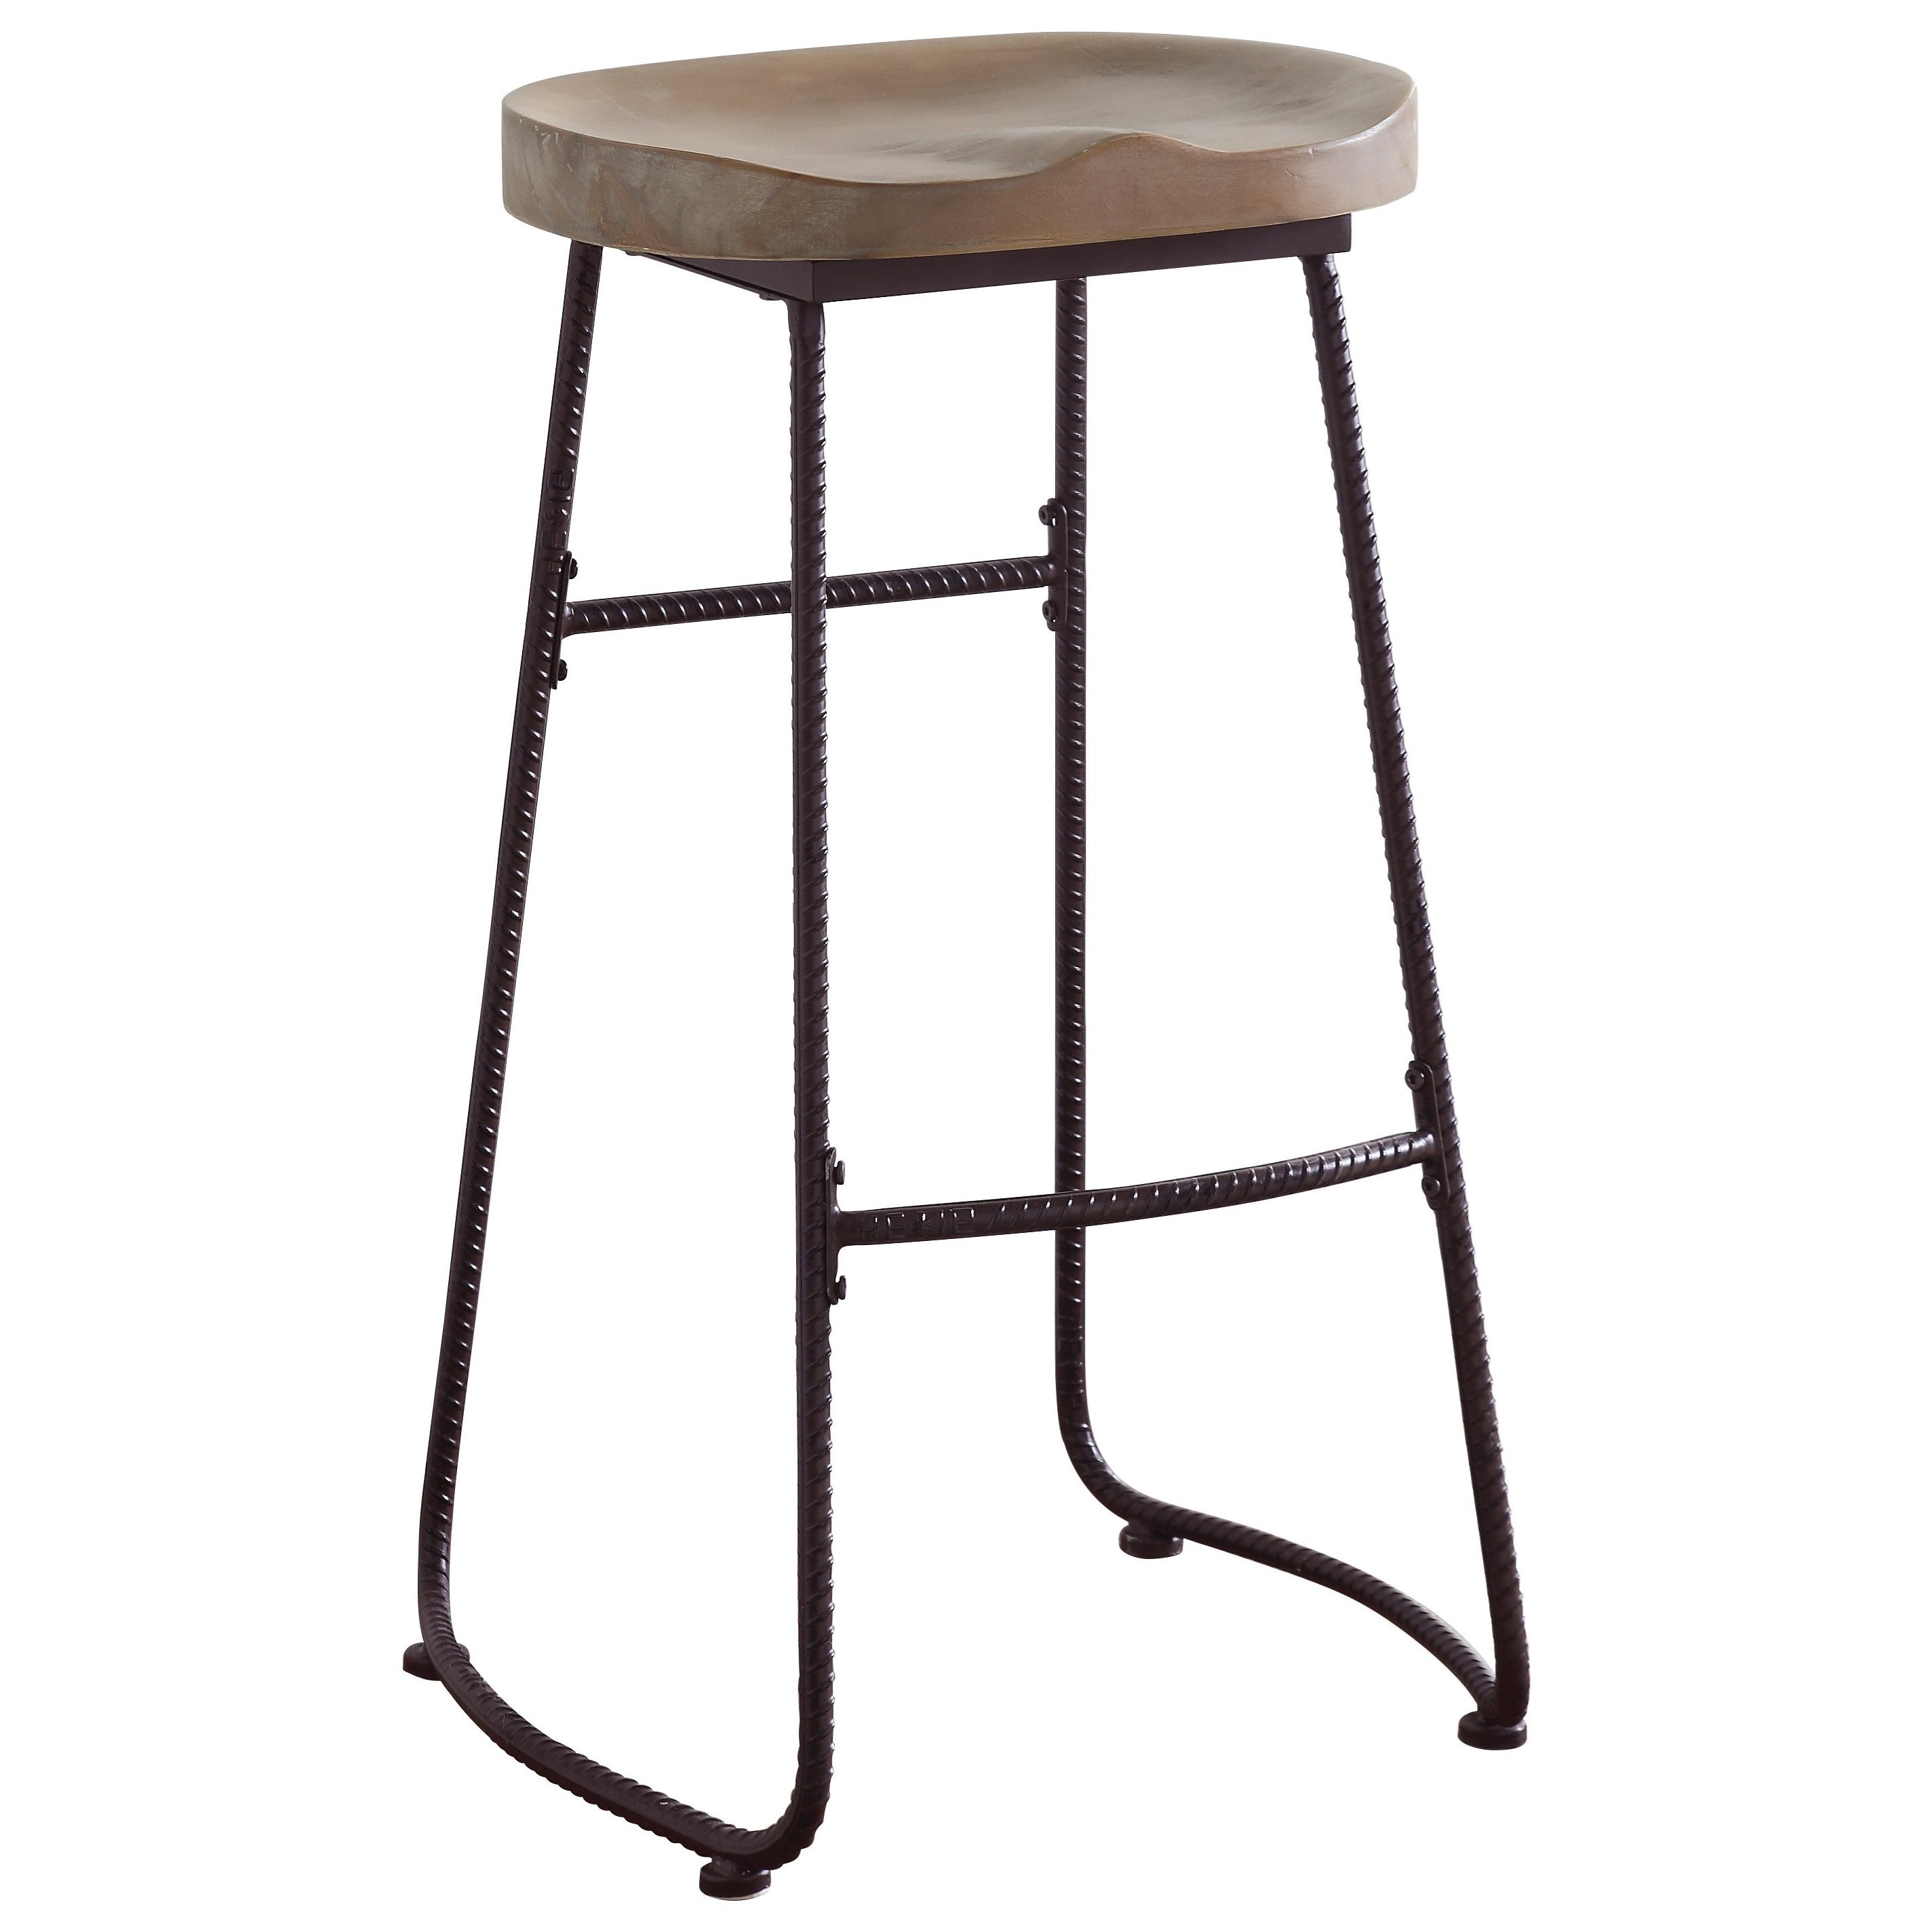 rustic bar stools dining chairs and bar stools rustic bar stool with saddle seat OKOGDQN